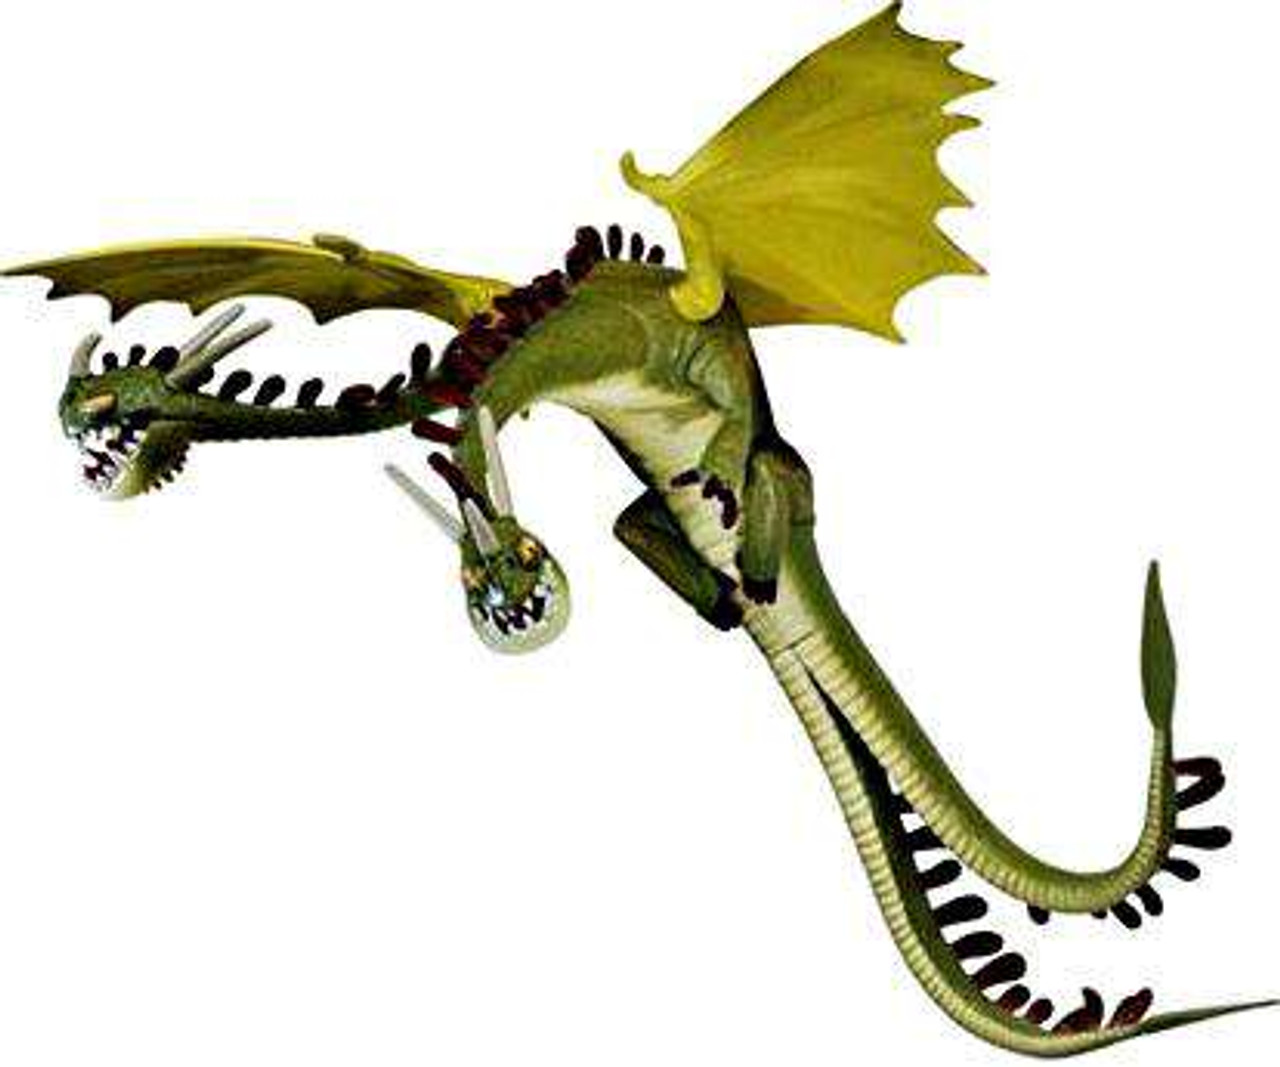 How to train your dragon series 1 deluxe zippleback exclusive 7 how to train your dragon series 1 deluxe zippleback exclusive 7 action figure spin master toywiz ccuart Choice Image